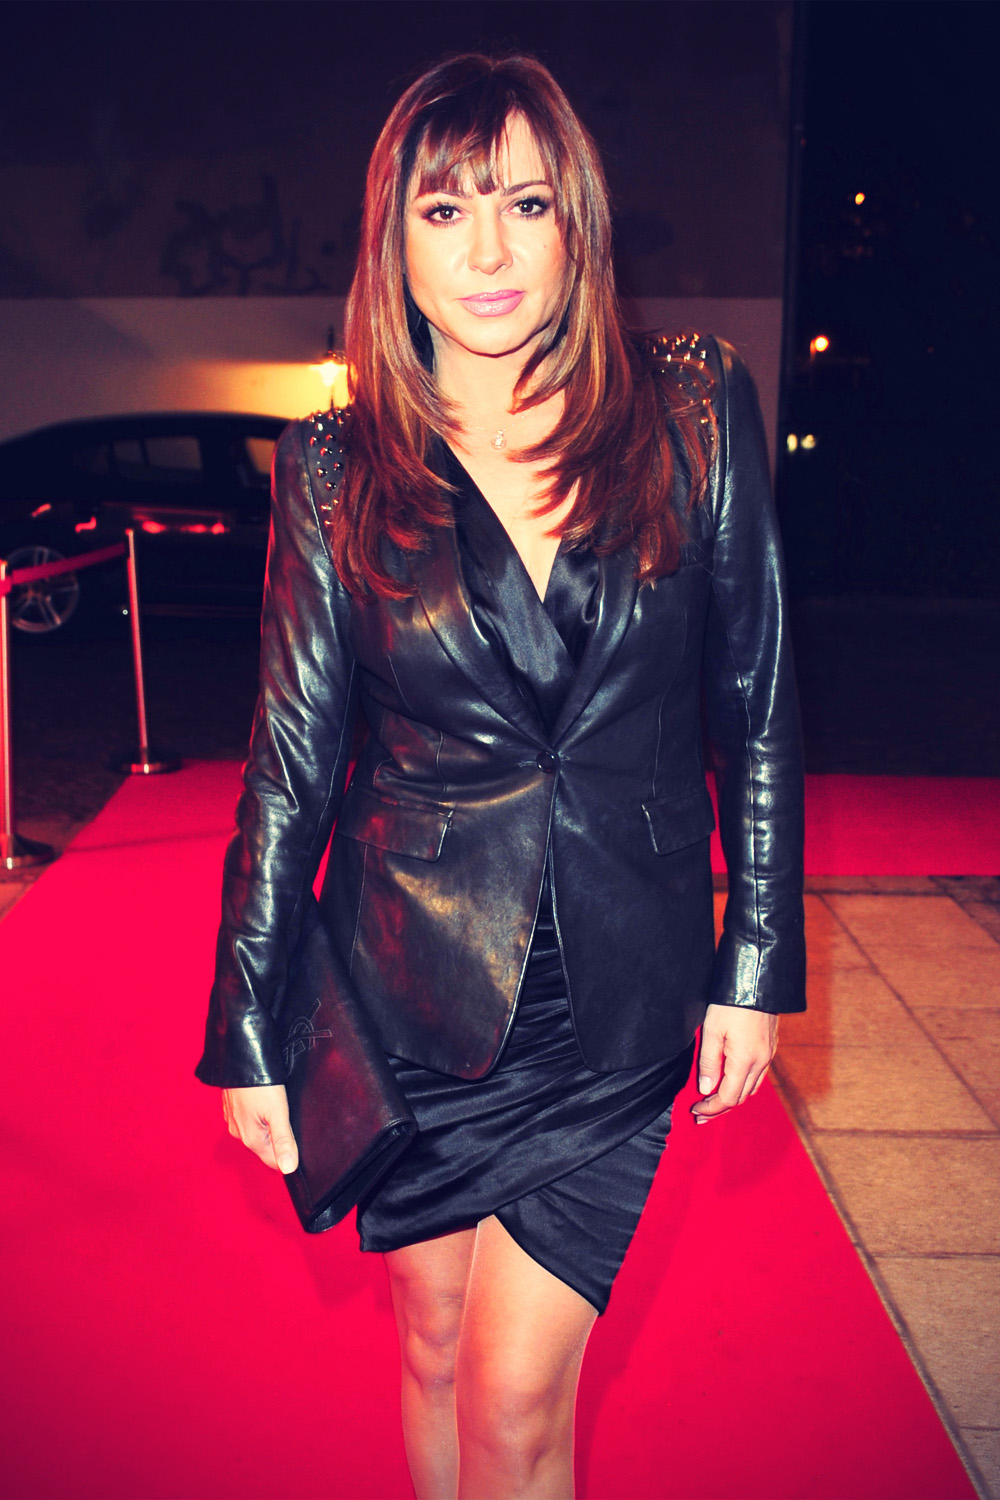 Simone Thomalla at Premiere des Porsche 911 Carrera 4